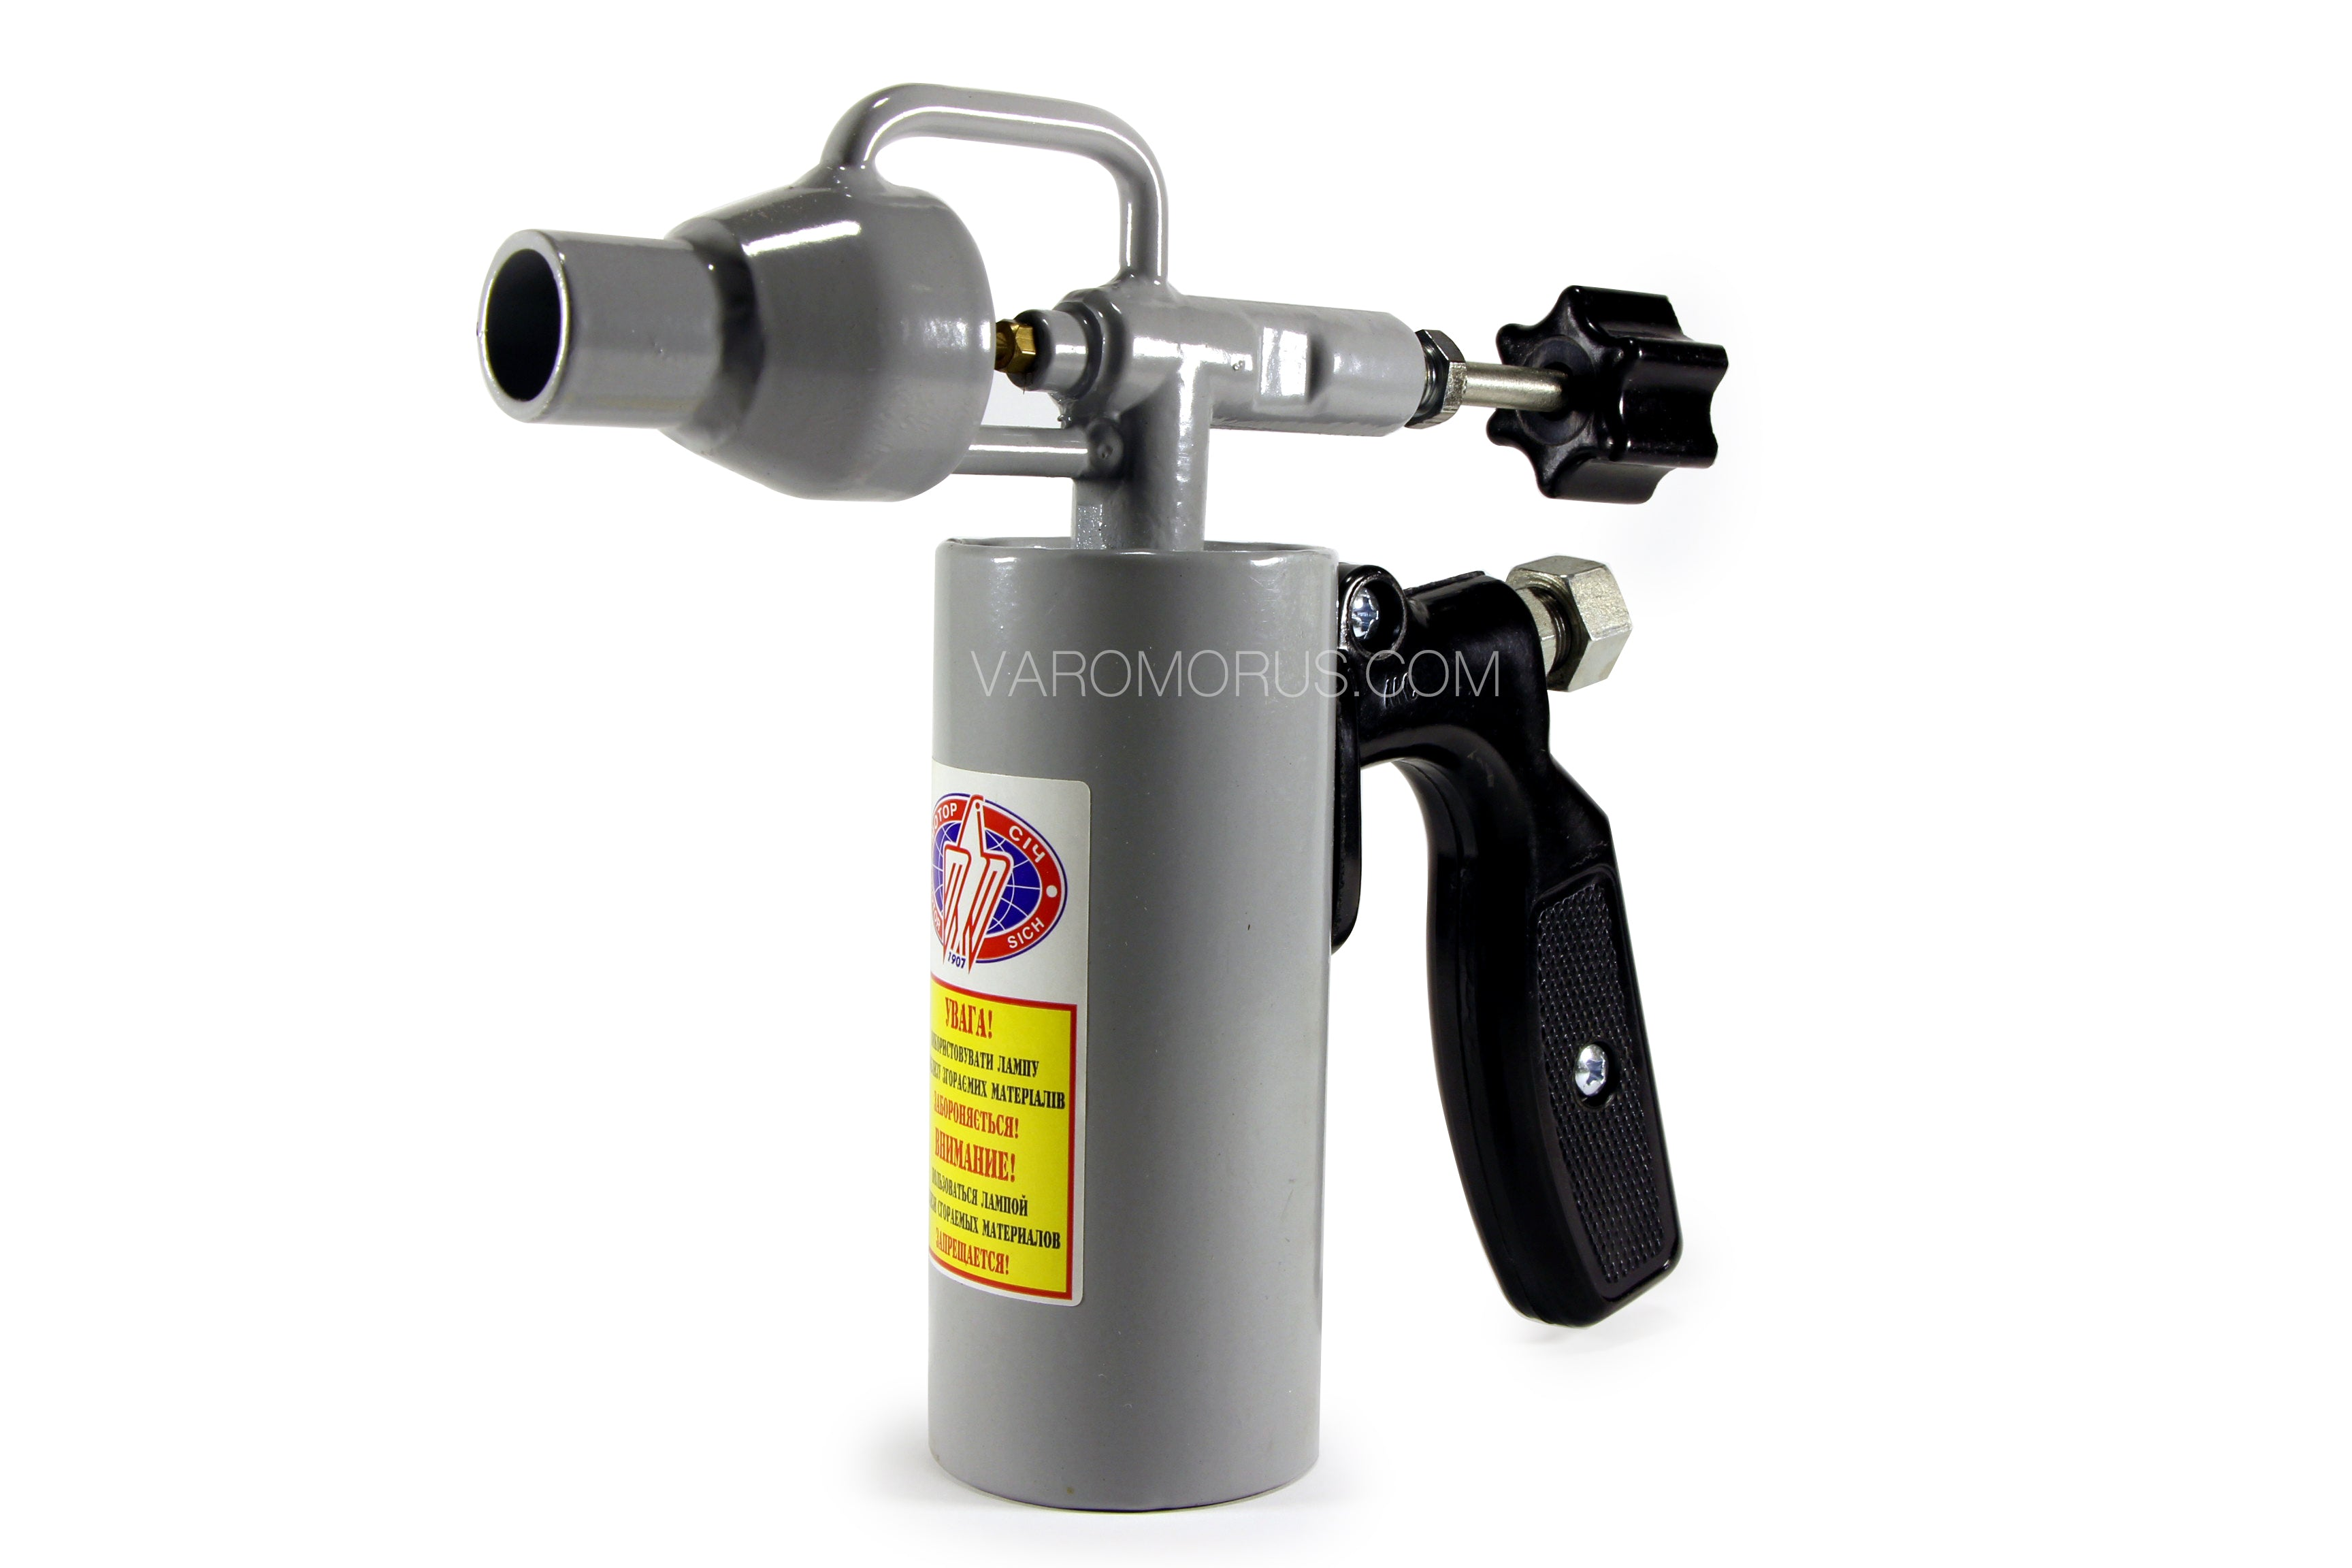 BLOWTORCH 0.15 LITER LAMP PETROL GASOLINE